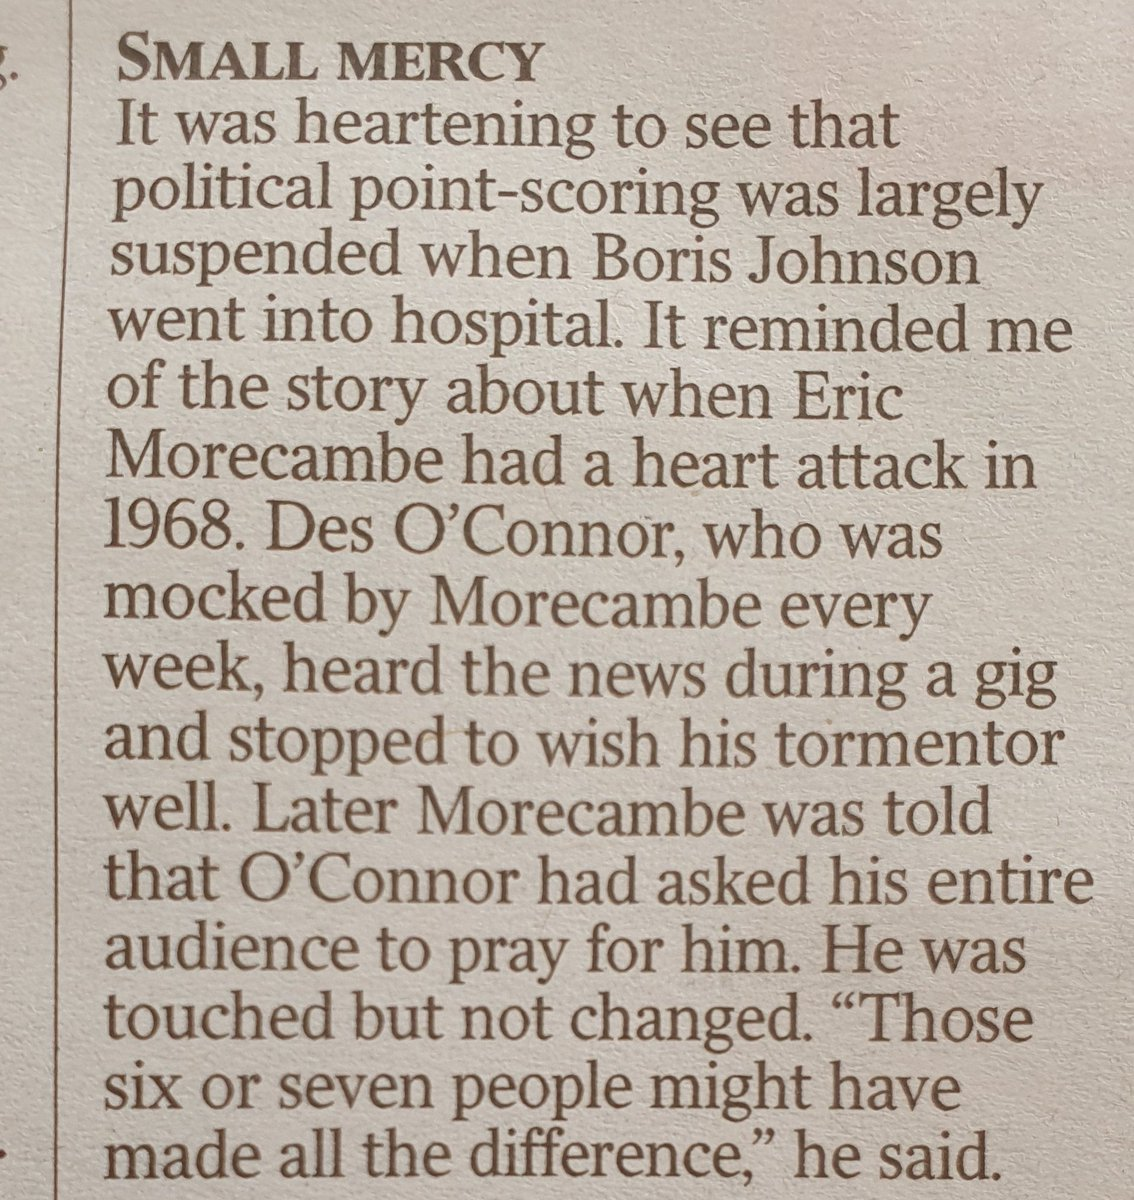 I really love this from the @TimesDiary today. https://t.co/vndivekHiR